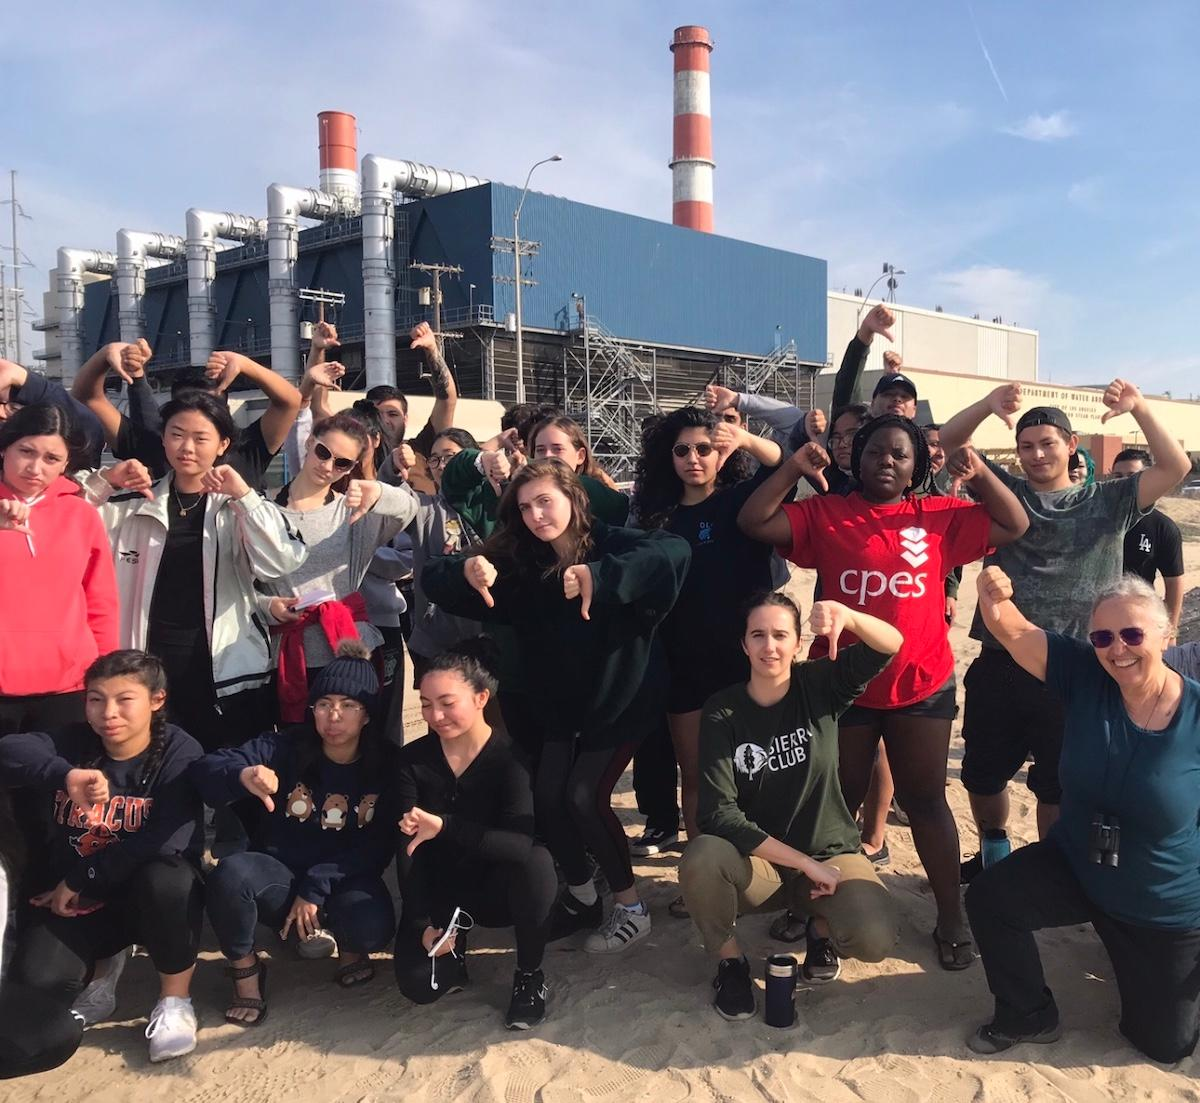 Students in the San Fernando Valley including LAVC's EcoAdvocates protest the LADWP gas fired power plant in Sun Valley.  The Valley Sierra Club helped organize the protest.